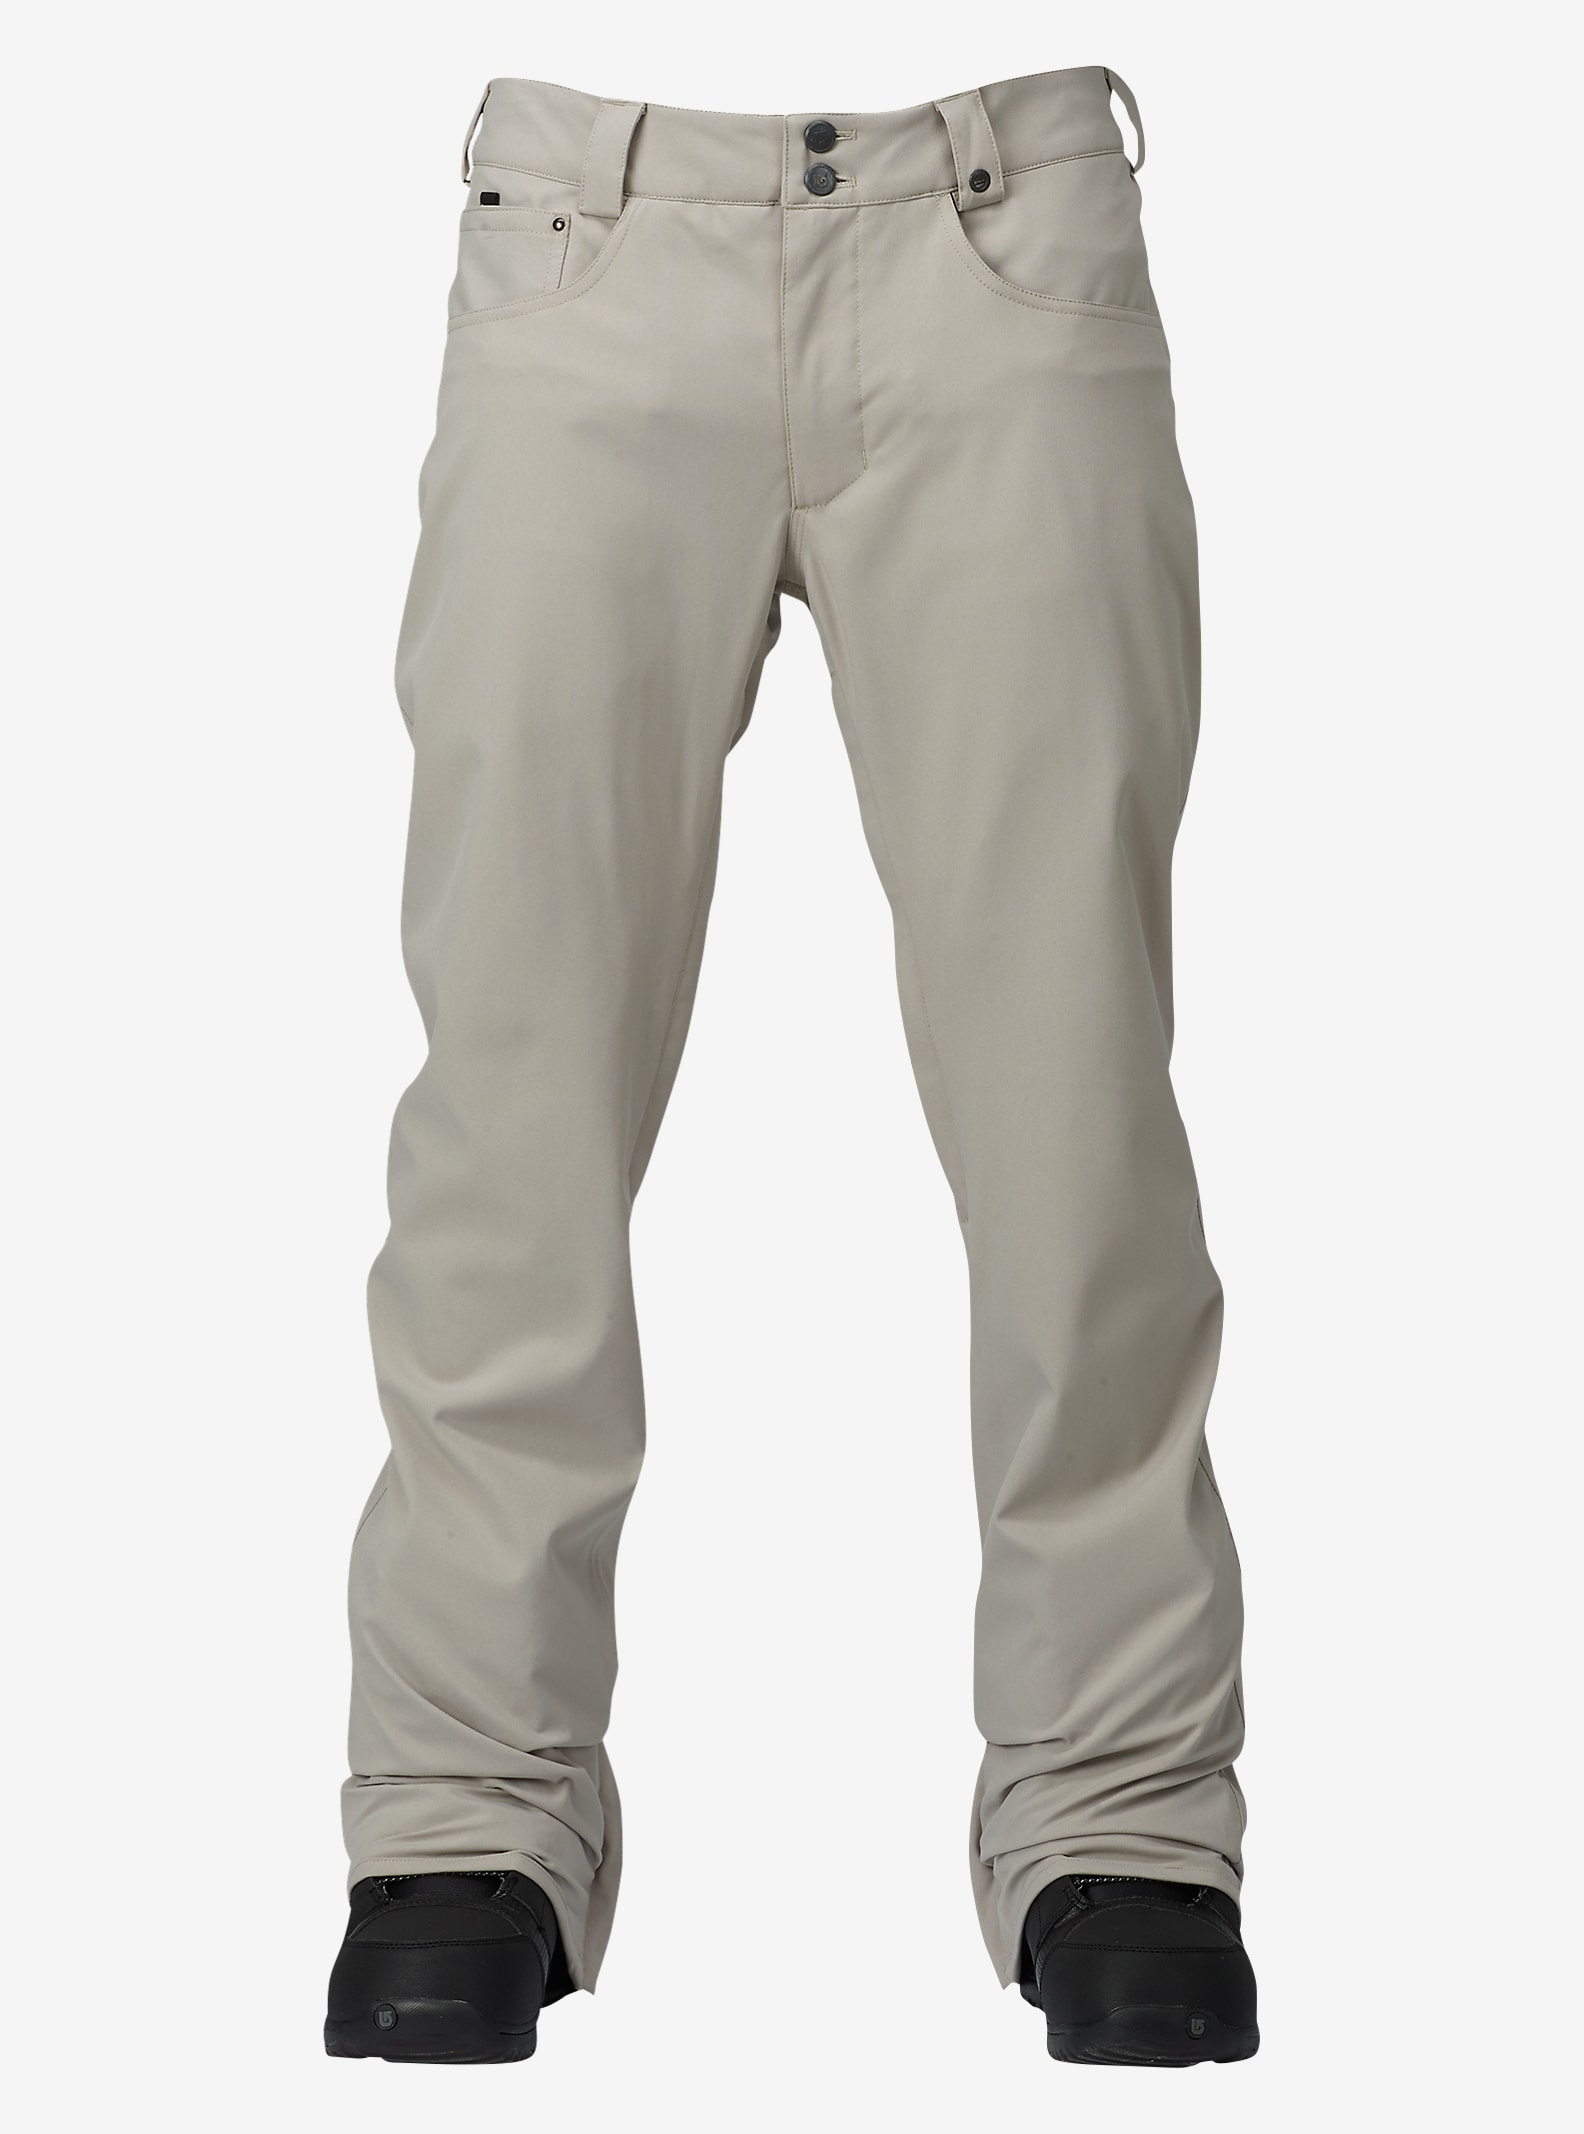 Burton TWC Greenlight Pant shown in Iron Grey